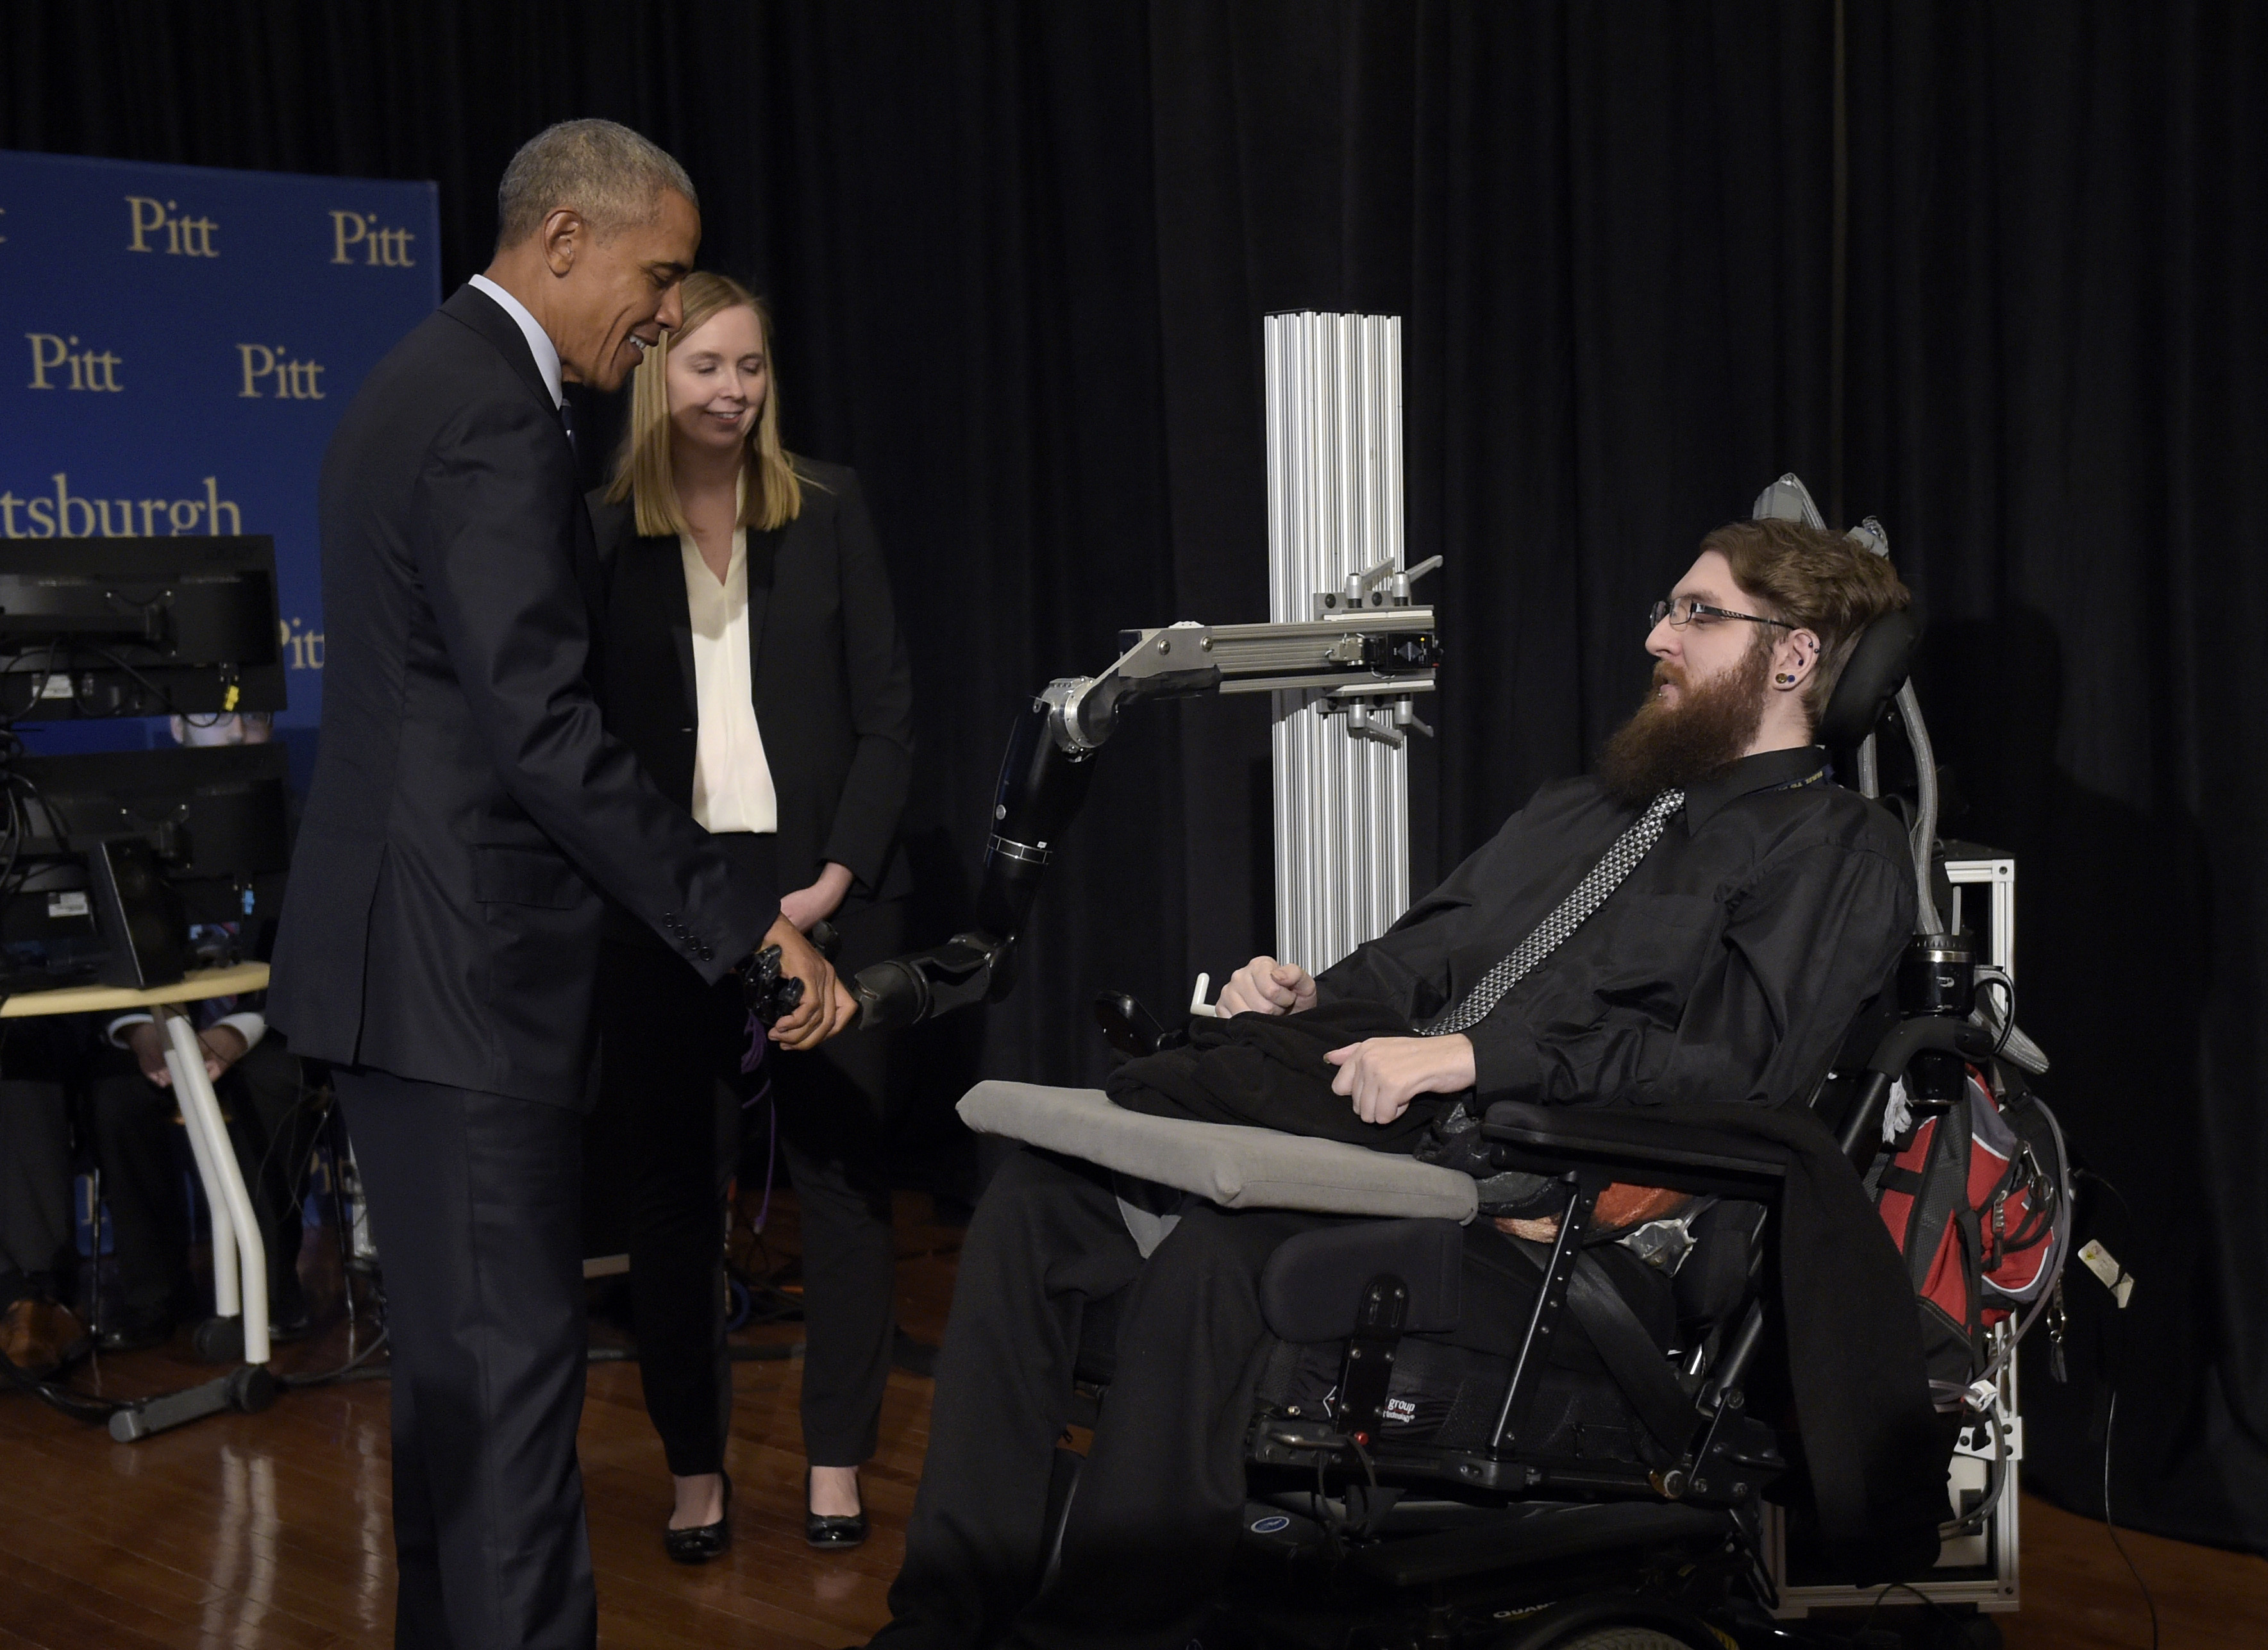 President Barack Obama shakes hands with Nathan Copeland, who demonstrates how he can control a robotic arm and feel when the robotic hand is touched. Dr. Jennifer Collinger, one of Copeland's doctors, watches.